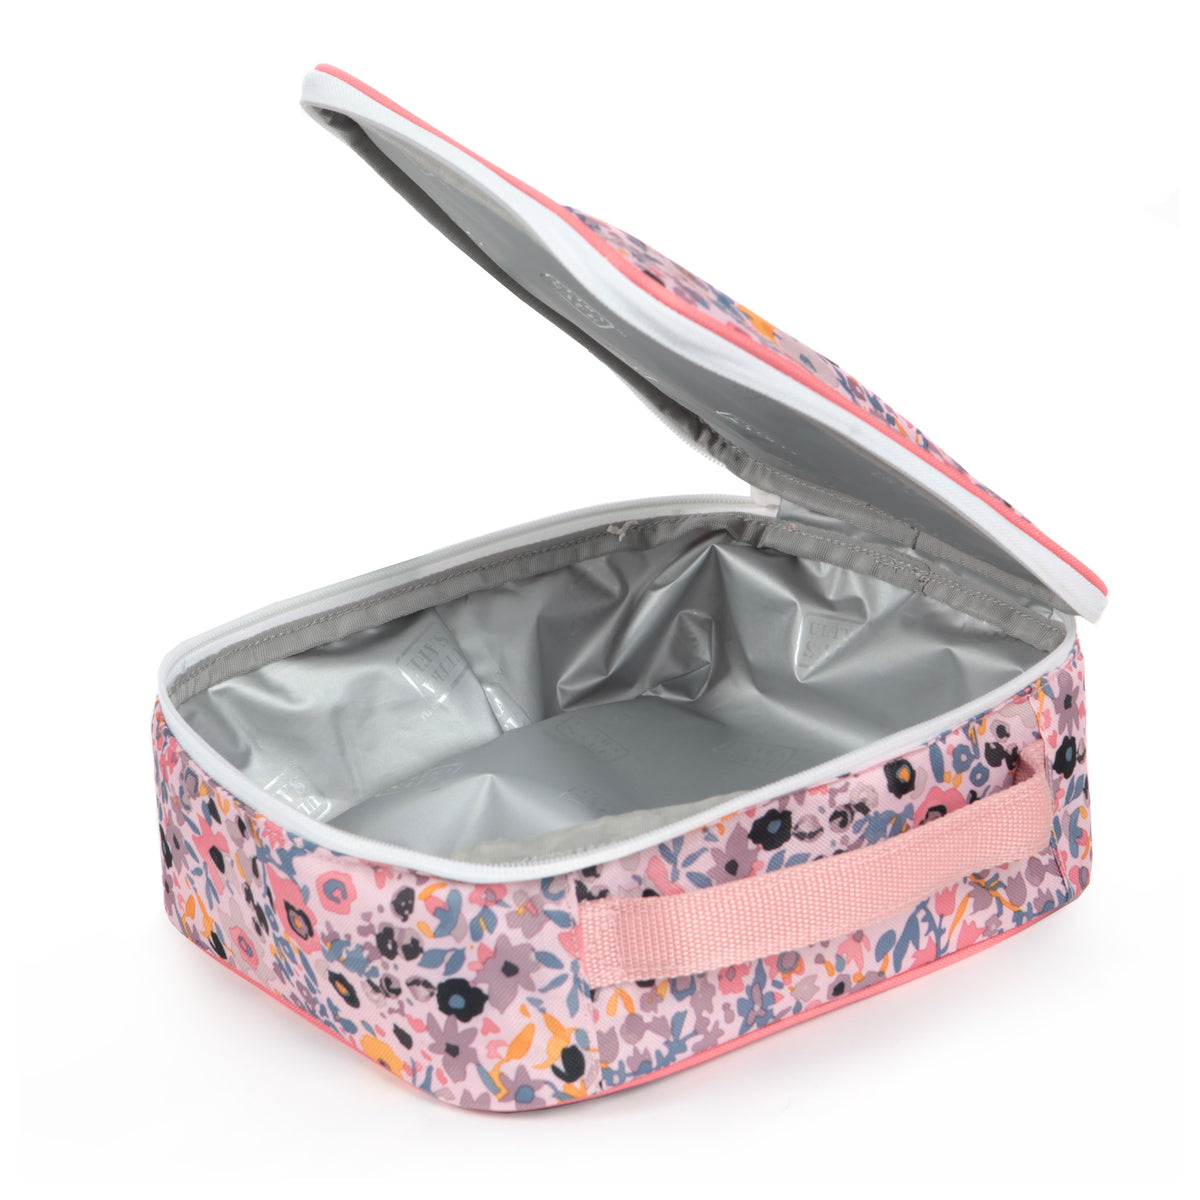 Arctic Zone® Classics Lunch Box - Floral - open empty